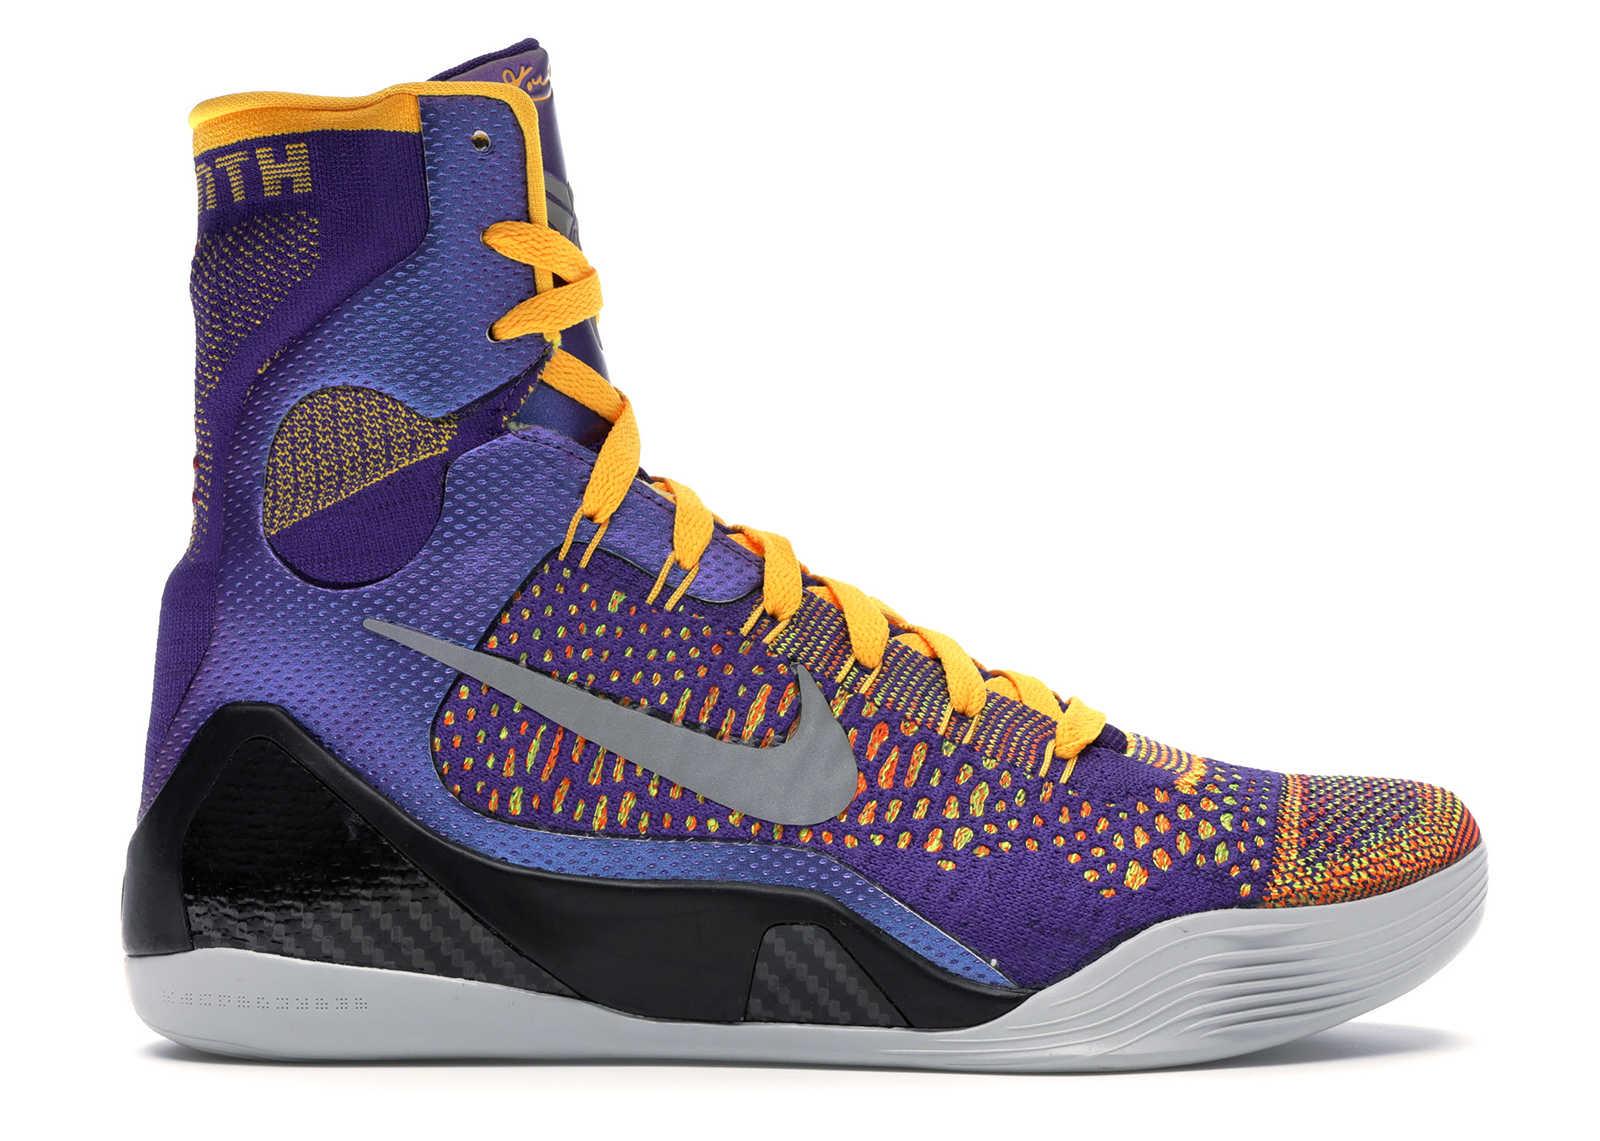 Nike Kobe 9 Elite Team Showtime